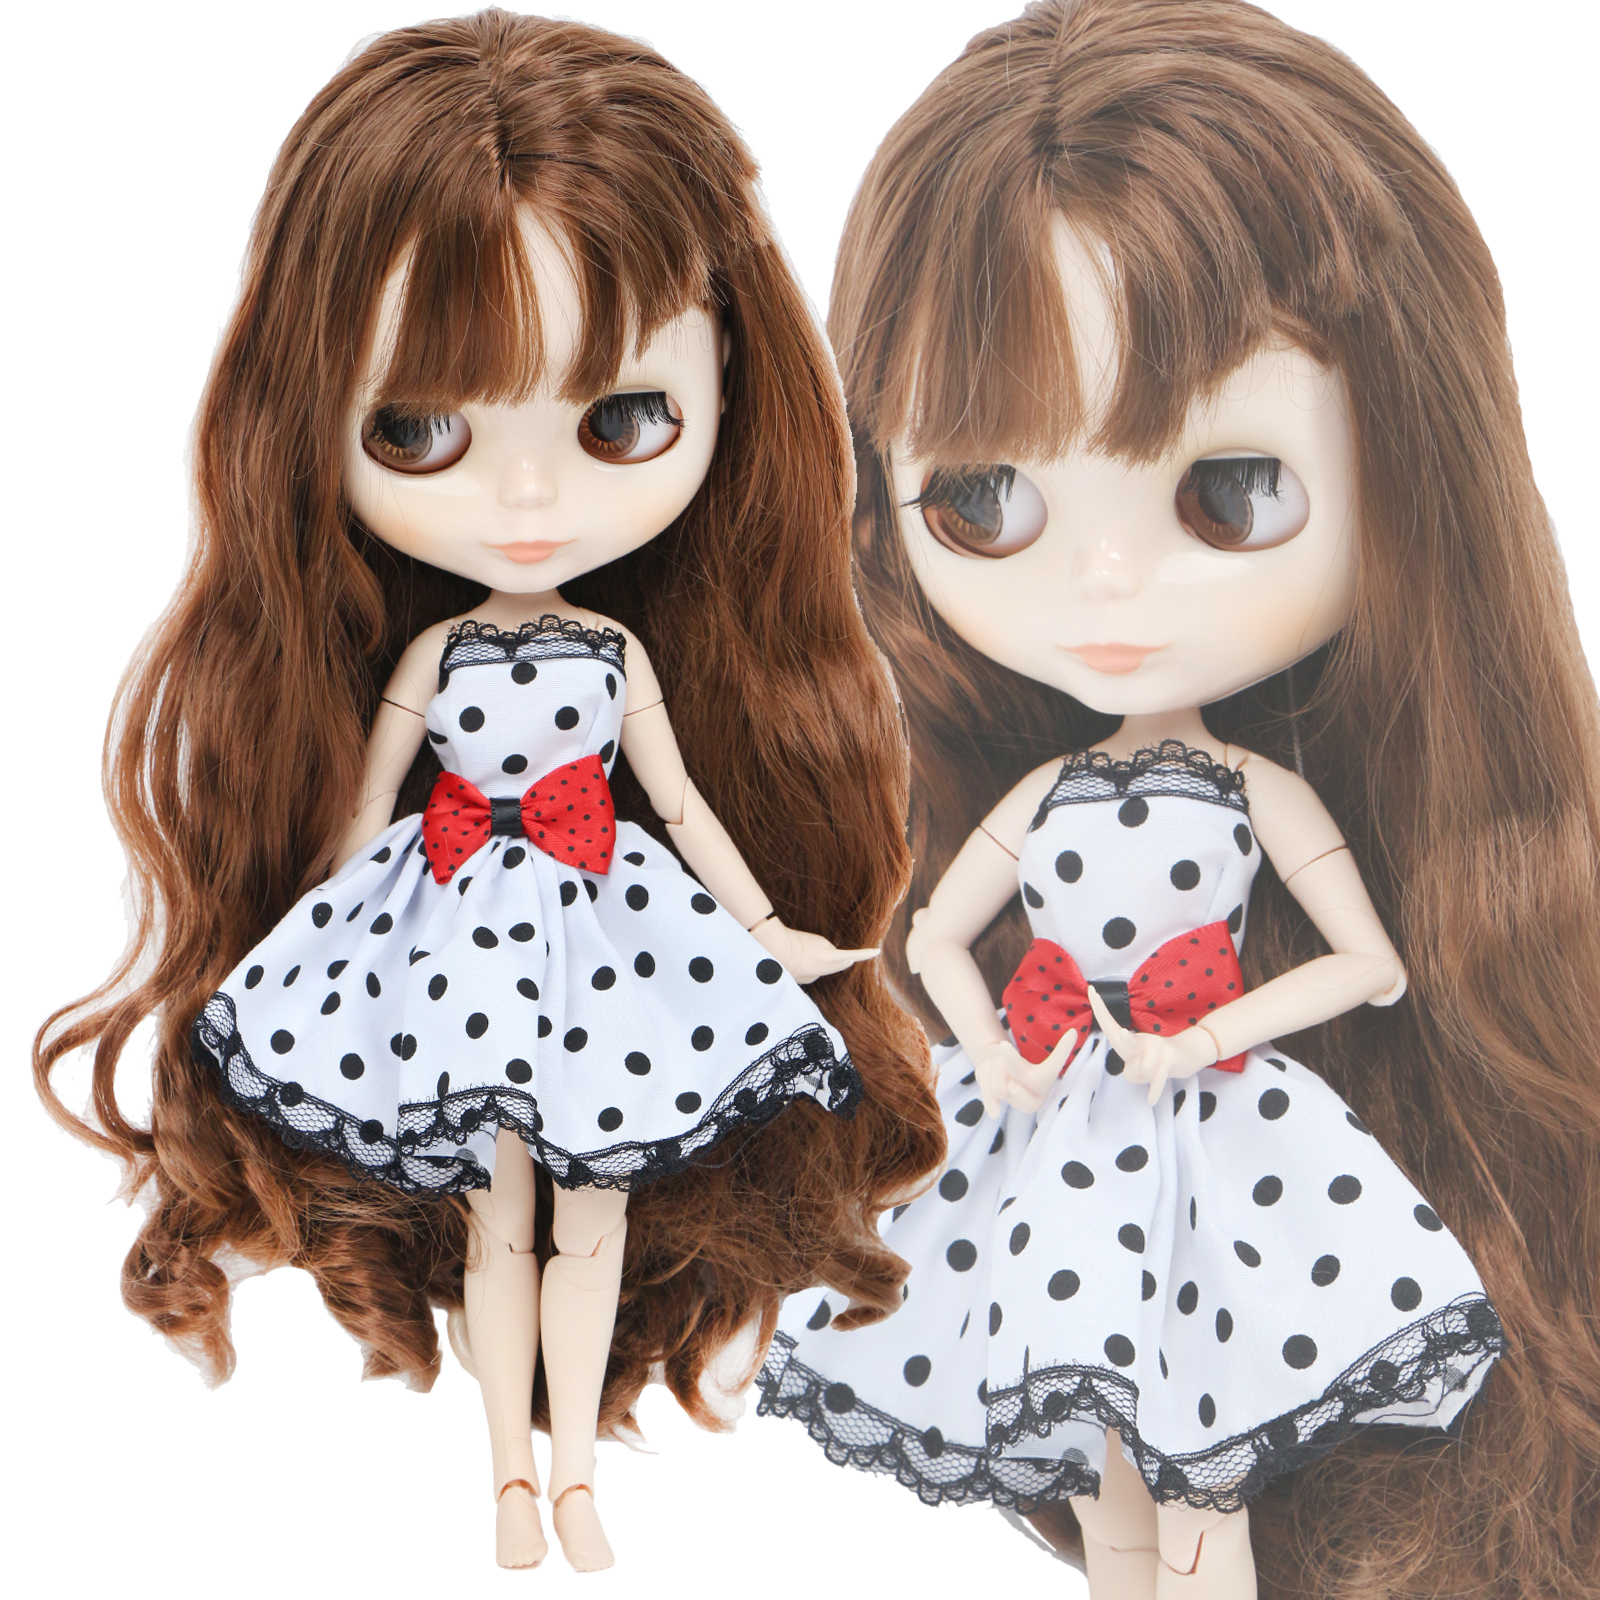 High Quality Dress For Blythe Doll White Black Lace Red Bowknot Wedding Party Wear Short Gown Doll Clothes Accessories Toy